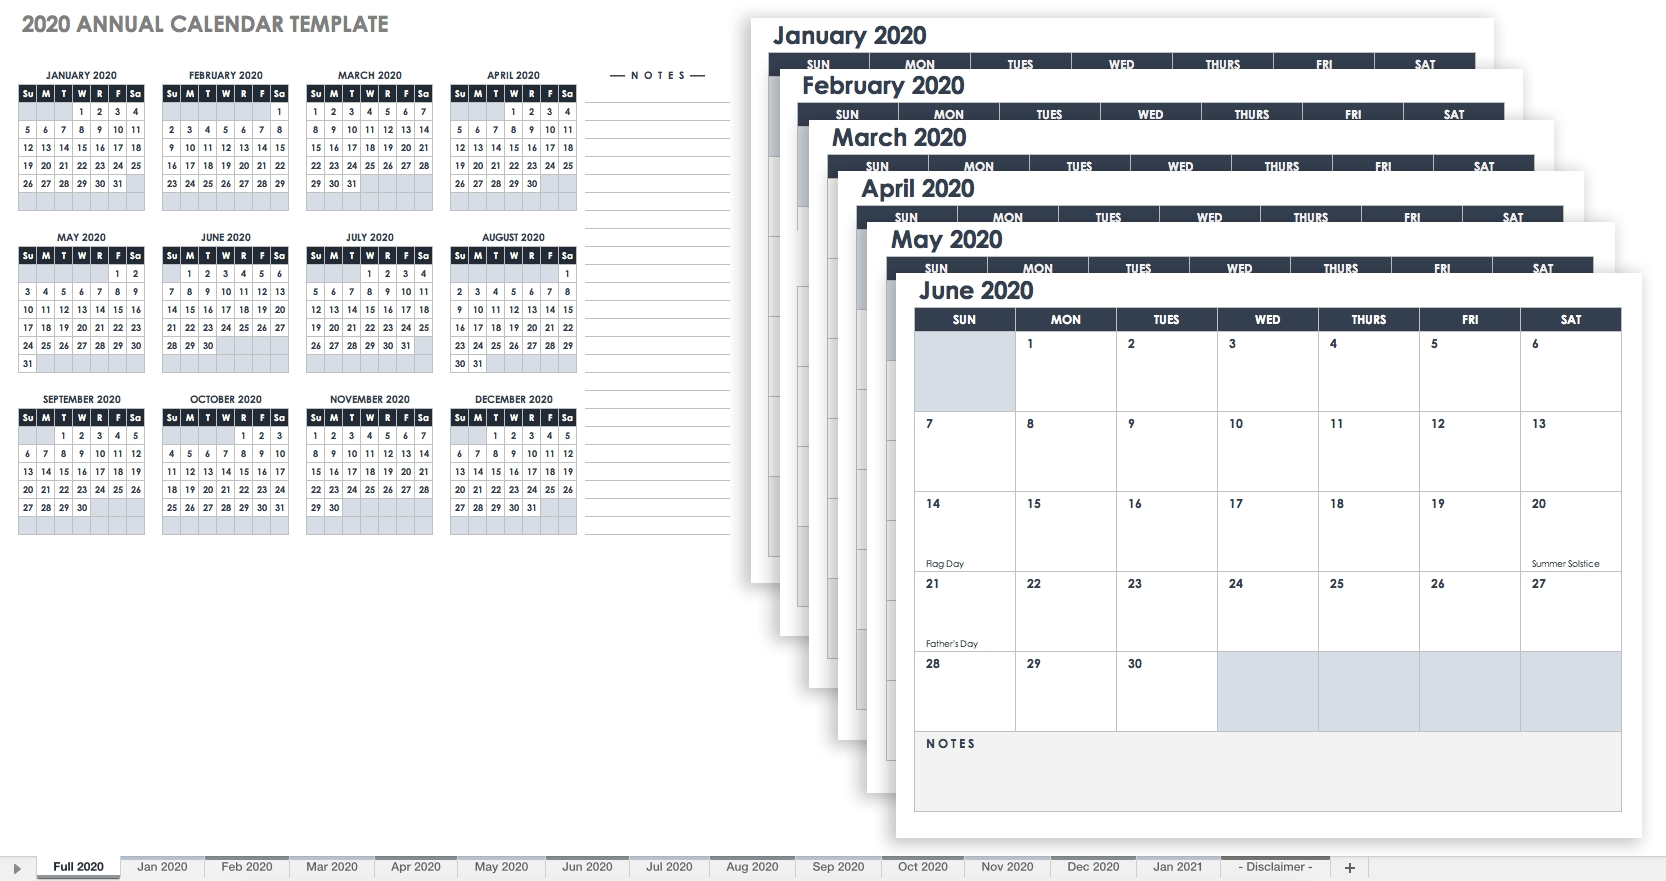 Free Blank Calendar Templates - Smartsheet-School Monthly Calendar No Weekends